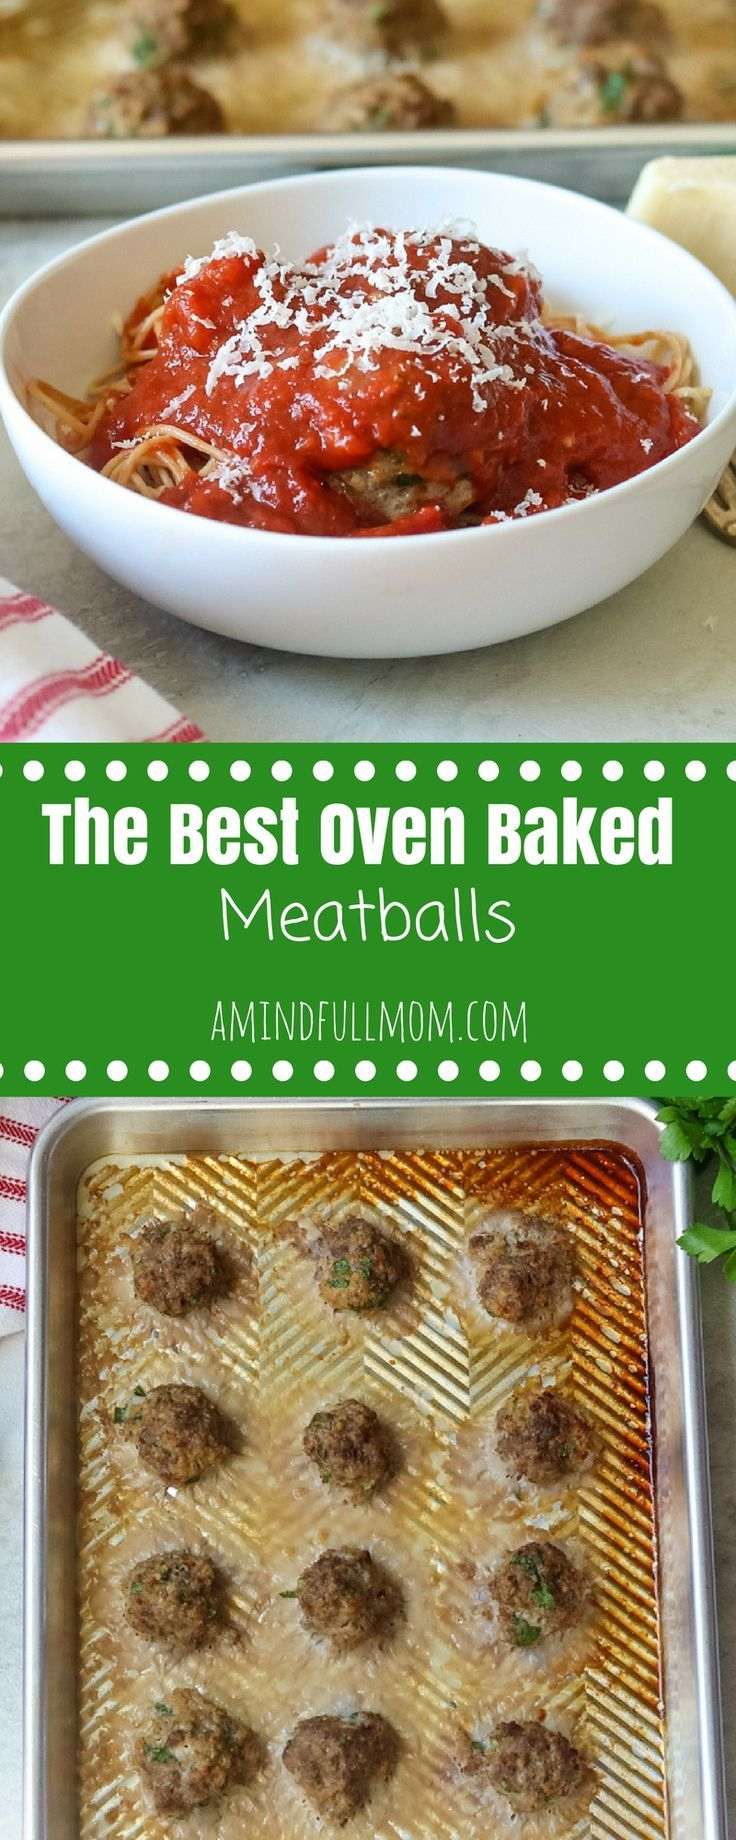 The World's Best Meatball Recipe: An authentic recipe for Italian style baked meatballs. There are a few tricks and tips in this recipe that will make making meatballs in the oven more delicous than any pan-fried meatball out there.#meatballs #italianrecipe  via @amindfullmom